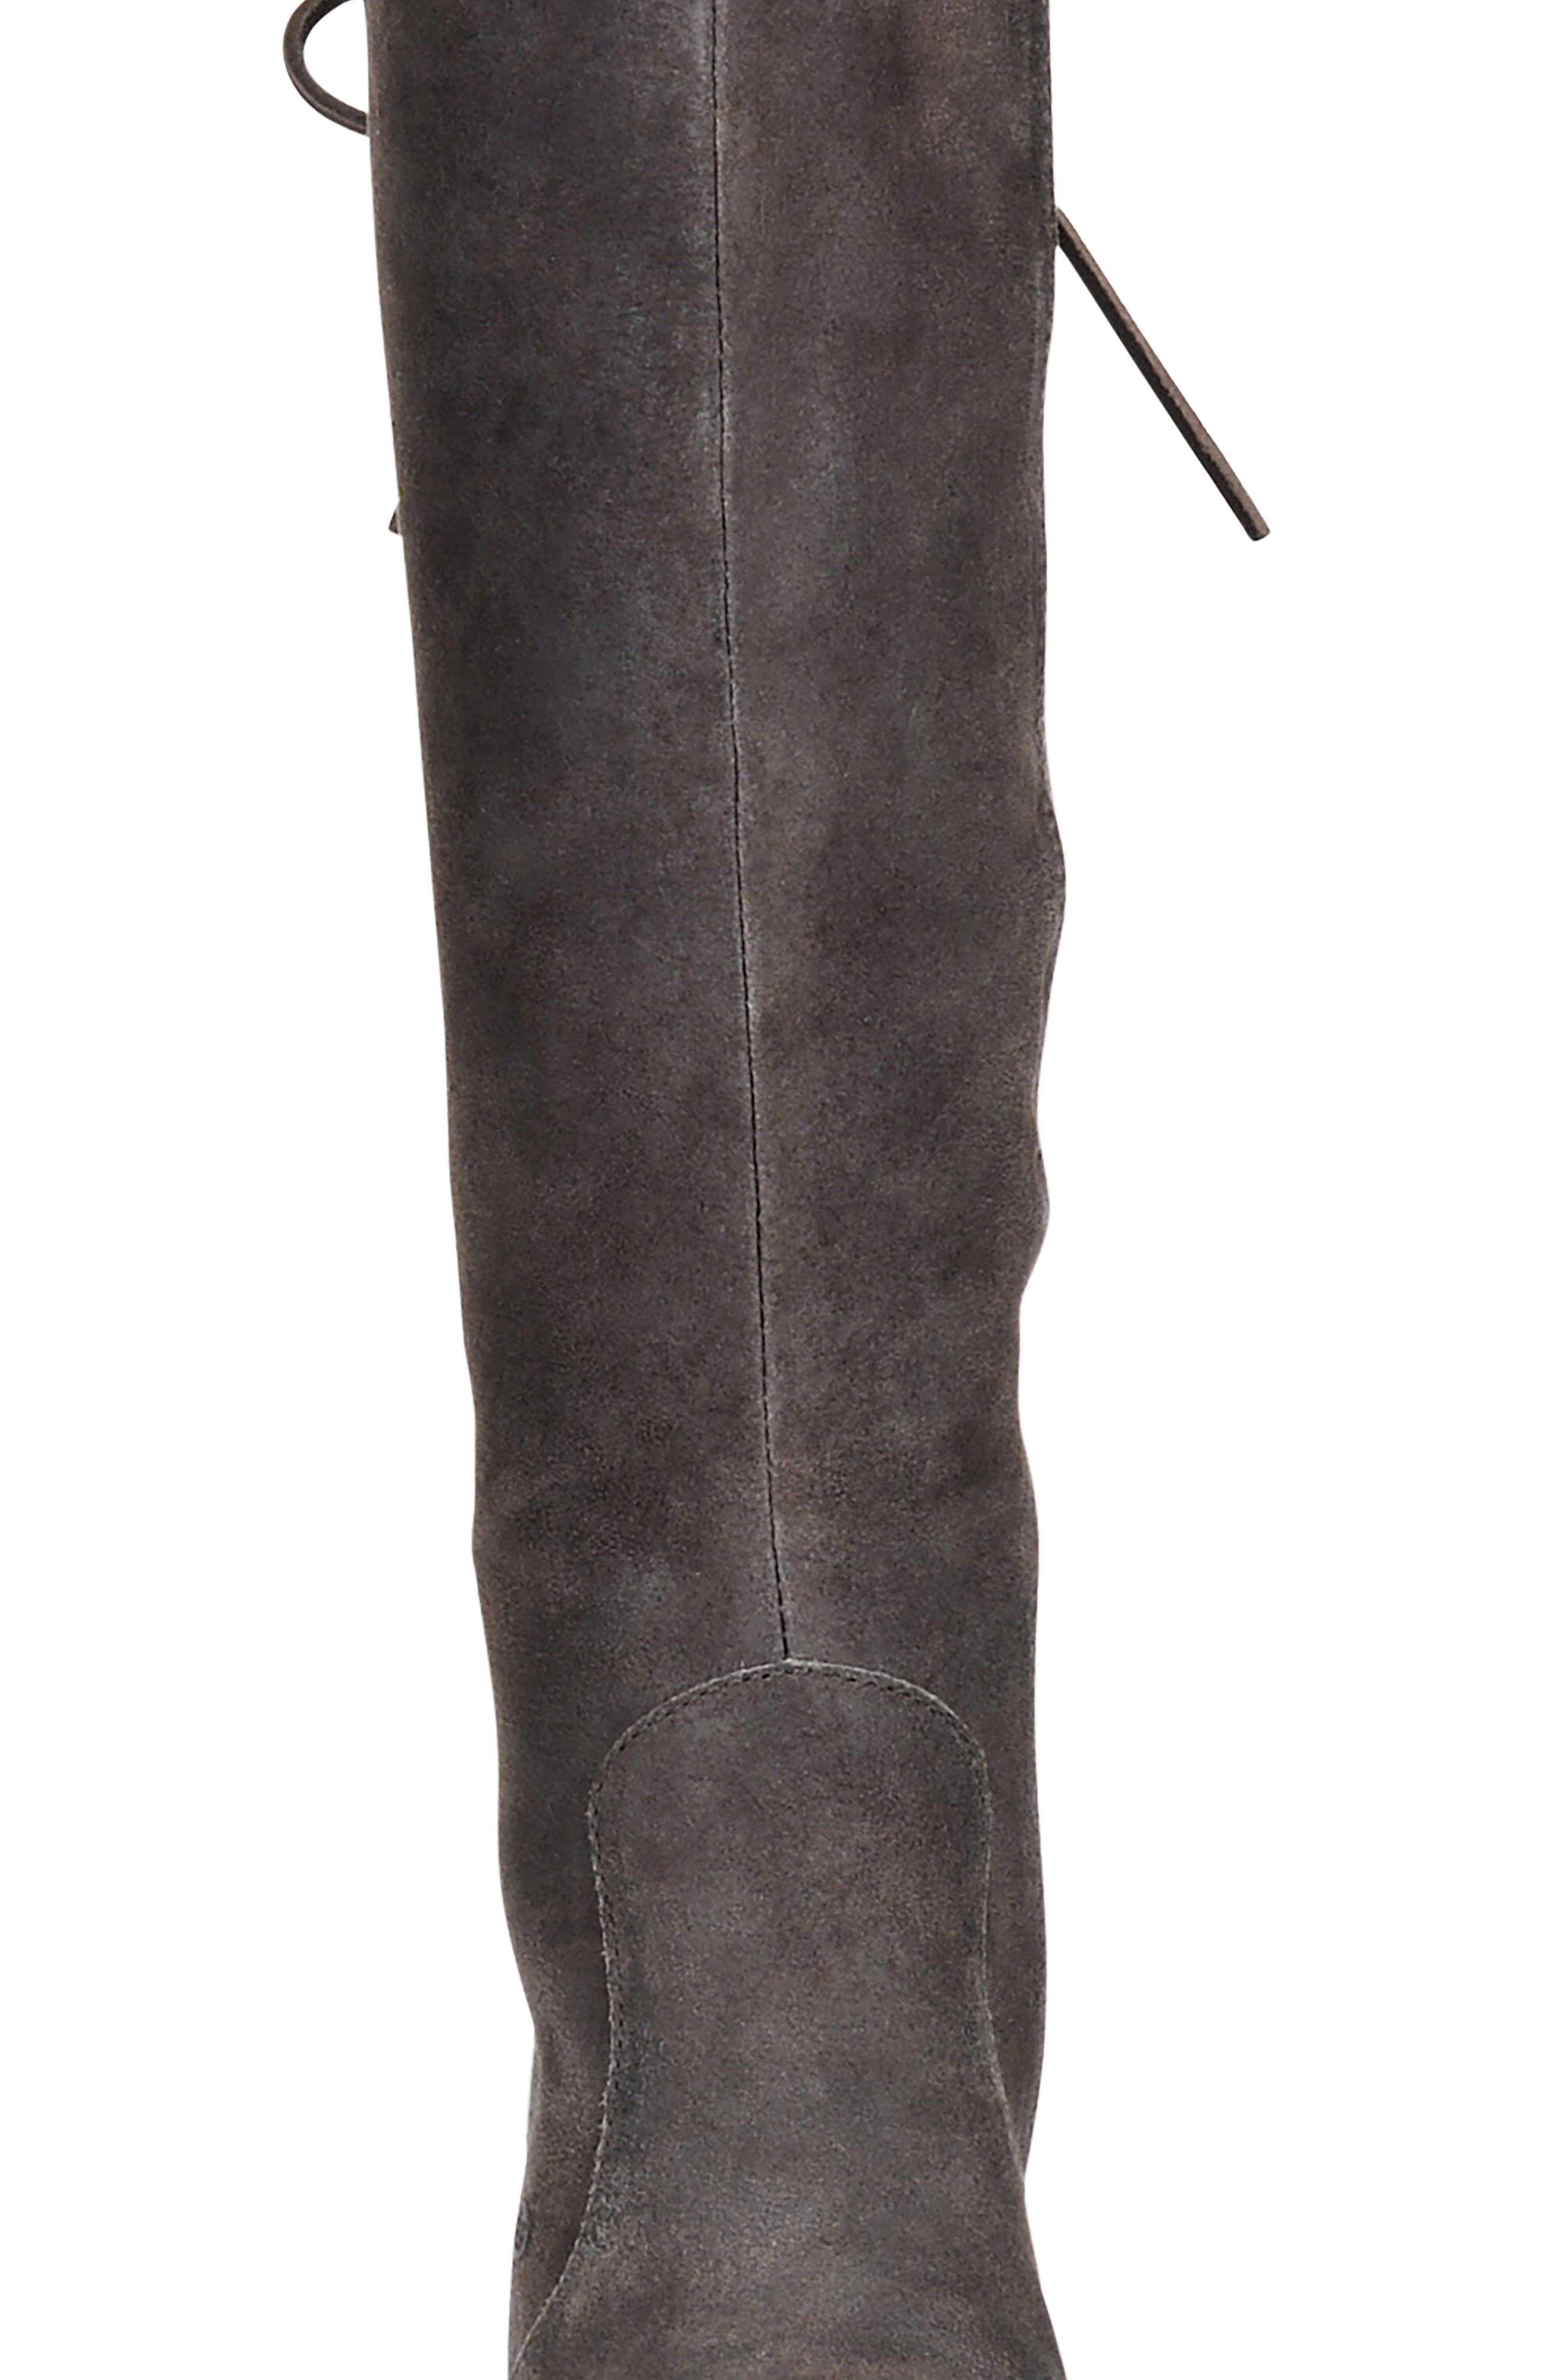 Felicia Knee High Boot,                             Alternate thumbnail 6, color,                             Grey Distressed Leather